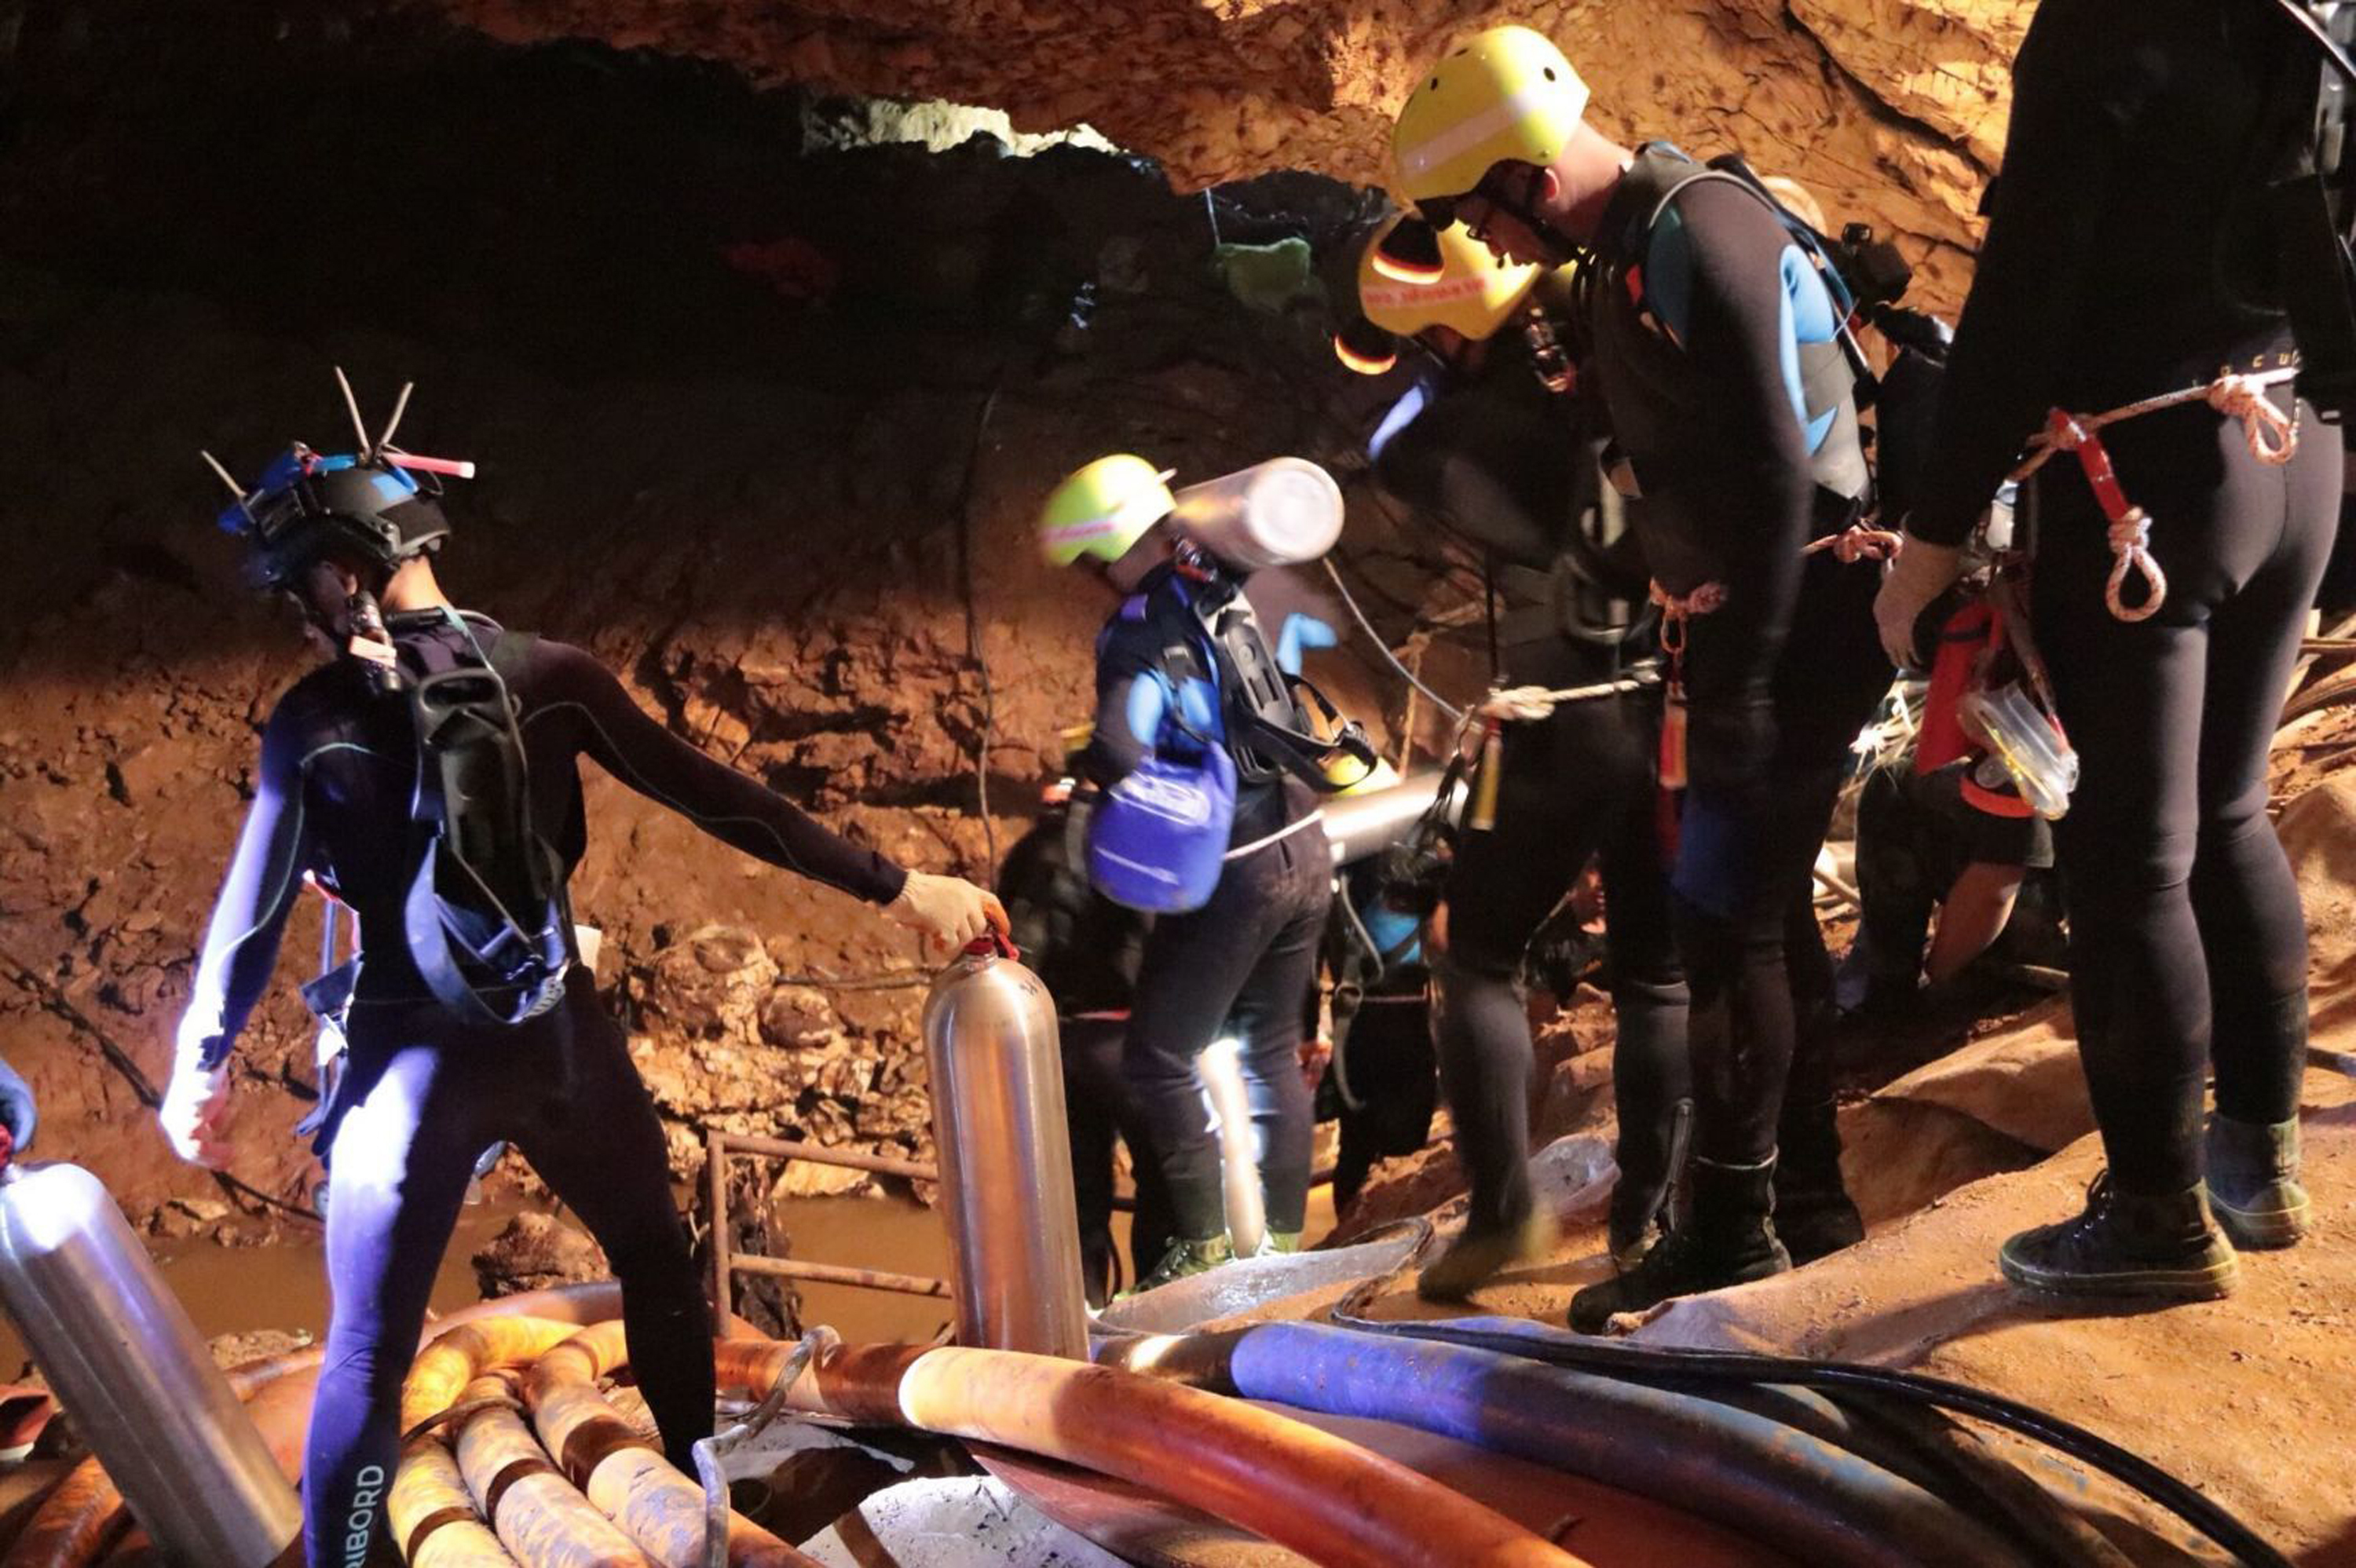 Incredible operation in pictures: All 12 boys, coach rescued from Thailand cave